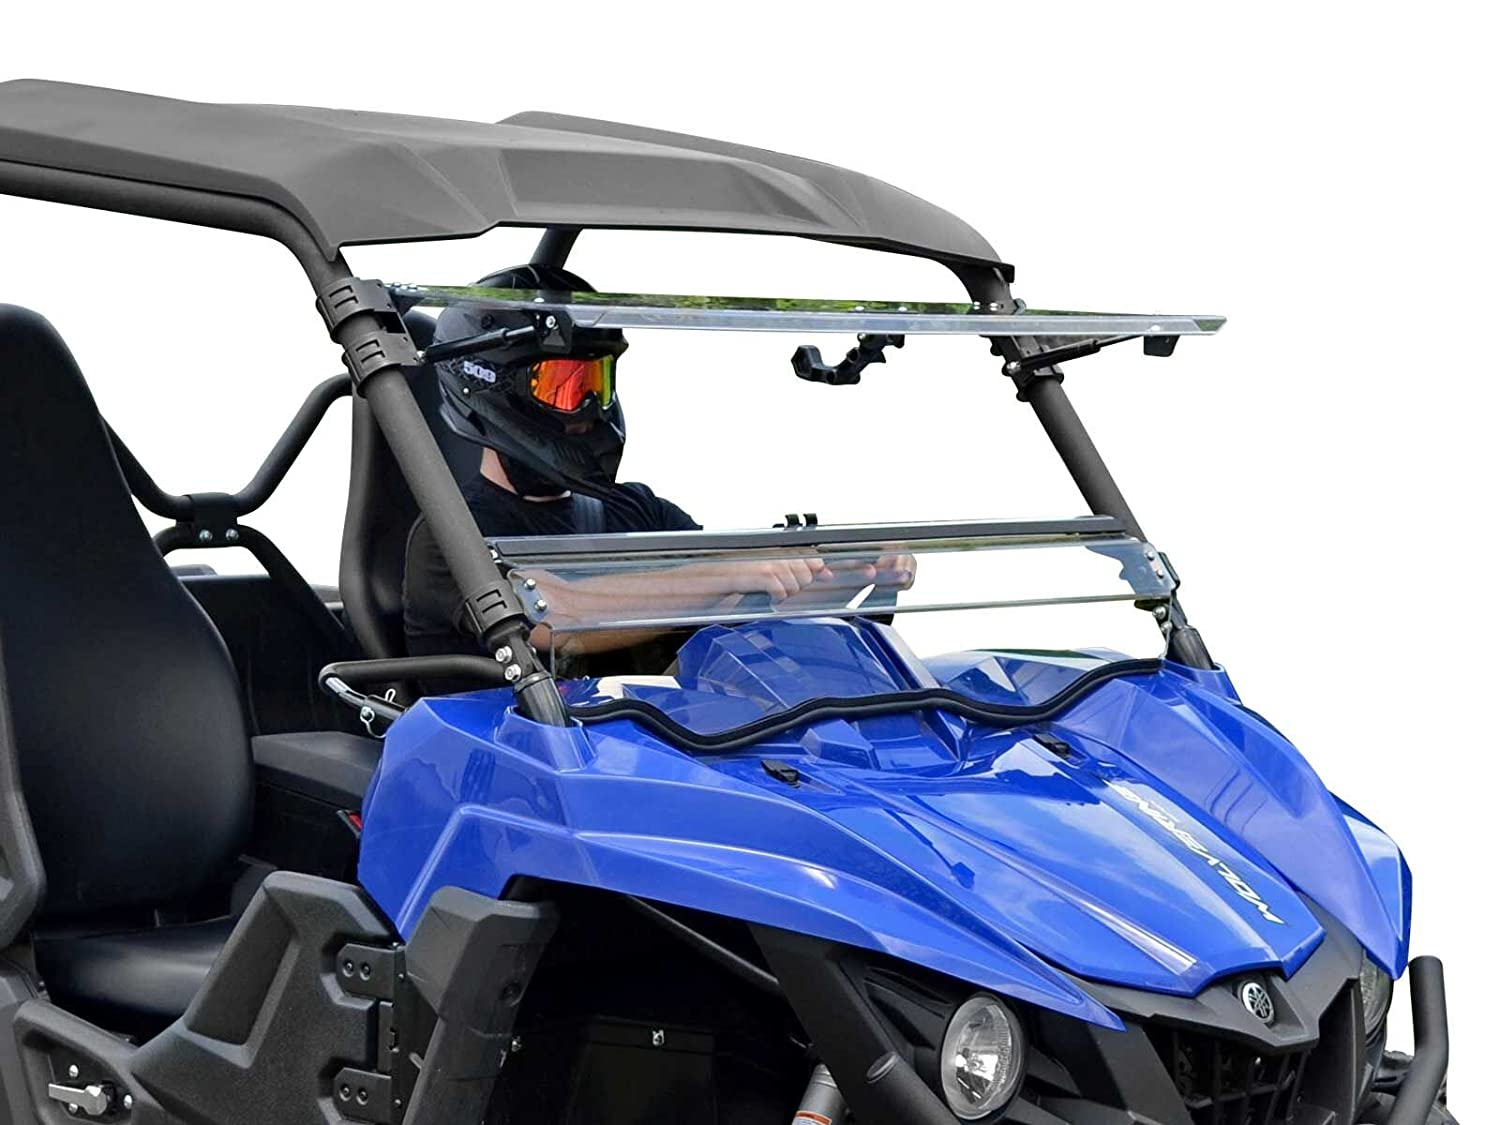 SuperATV Heavy Duty Scratch Resistant 3-IN-1 Flip Windshield for Yamaha Wolverine (2015+) - Does NOT Fit X2 or X4 Models - Has 3 Different Settings! SuperATV.com FWS-Y-WV-70